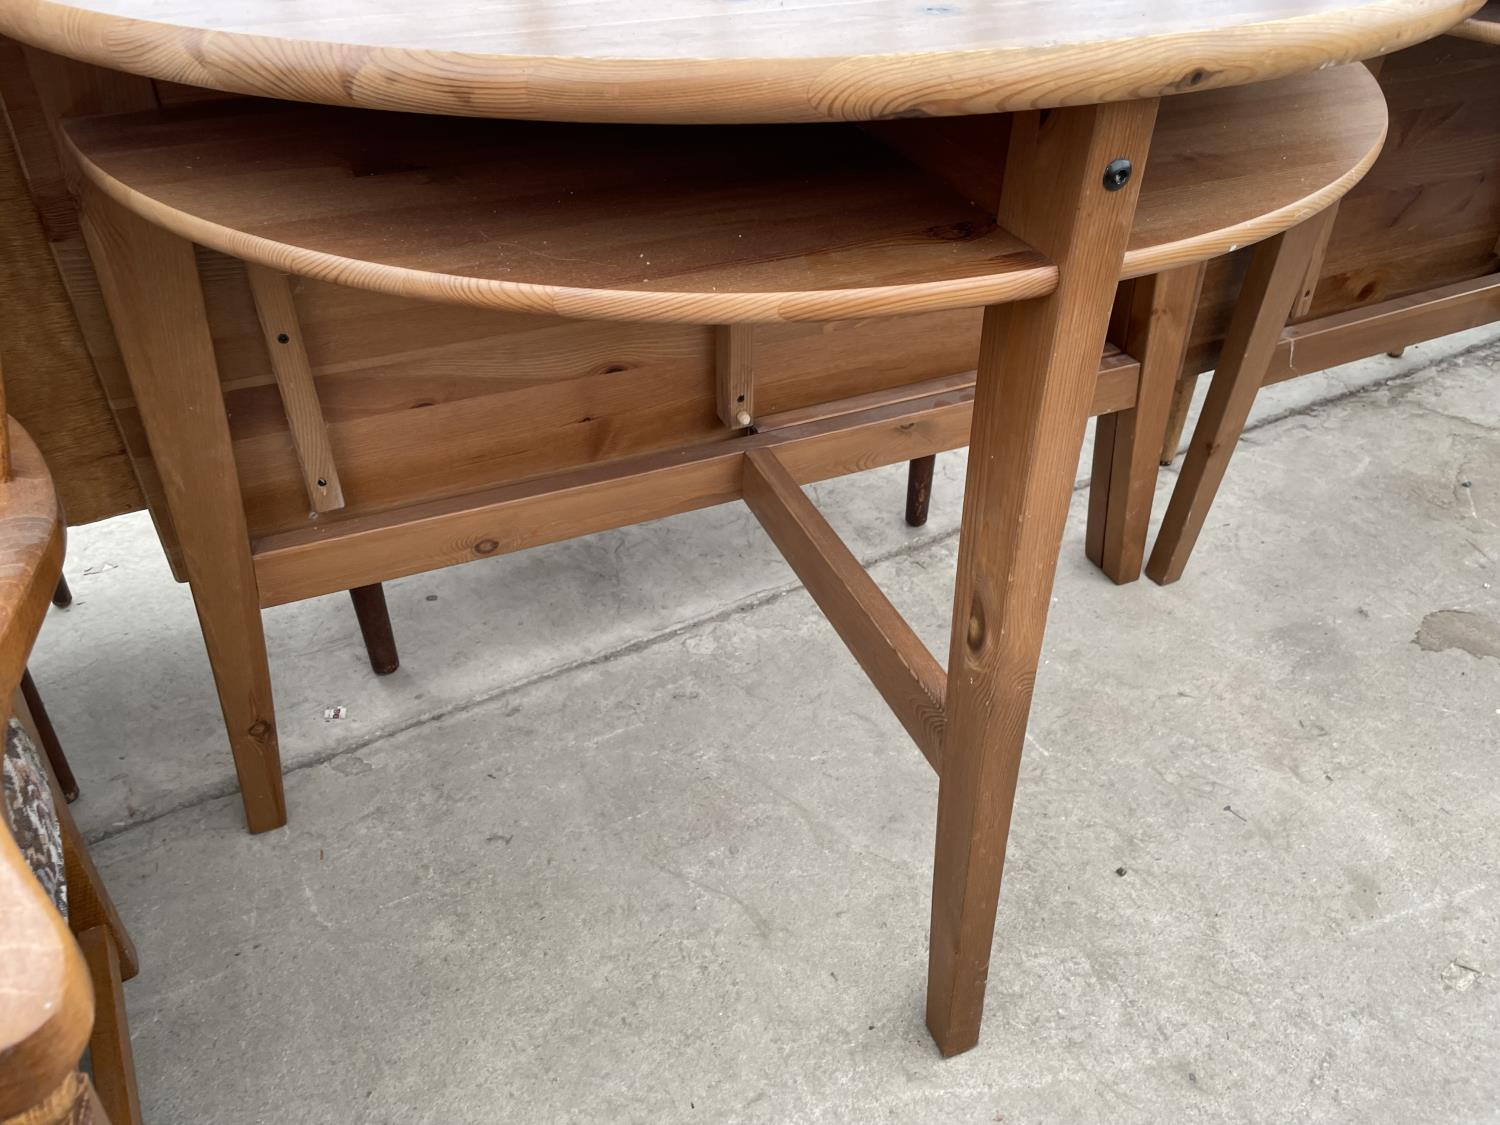 TWO PINE DROP LEAF TABLES - Image 3 of 5